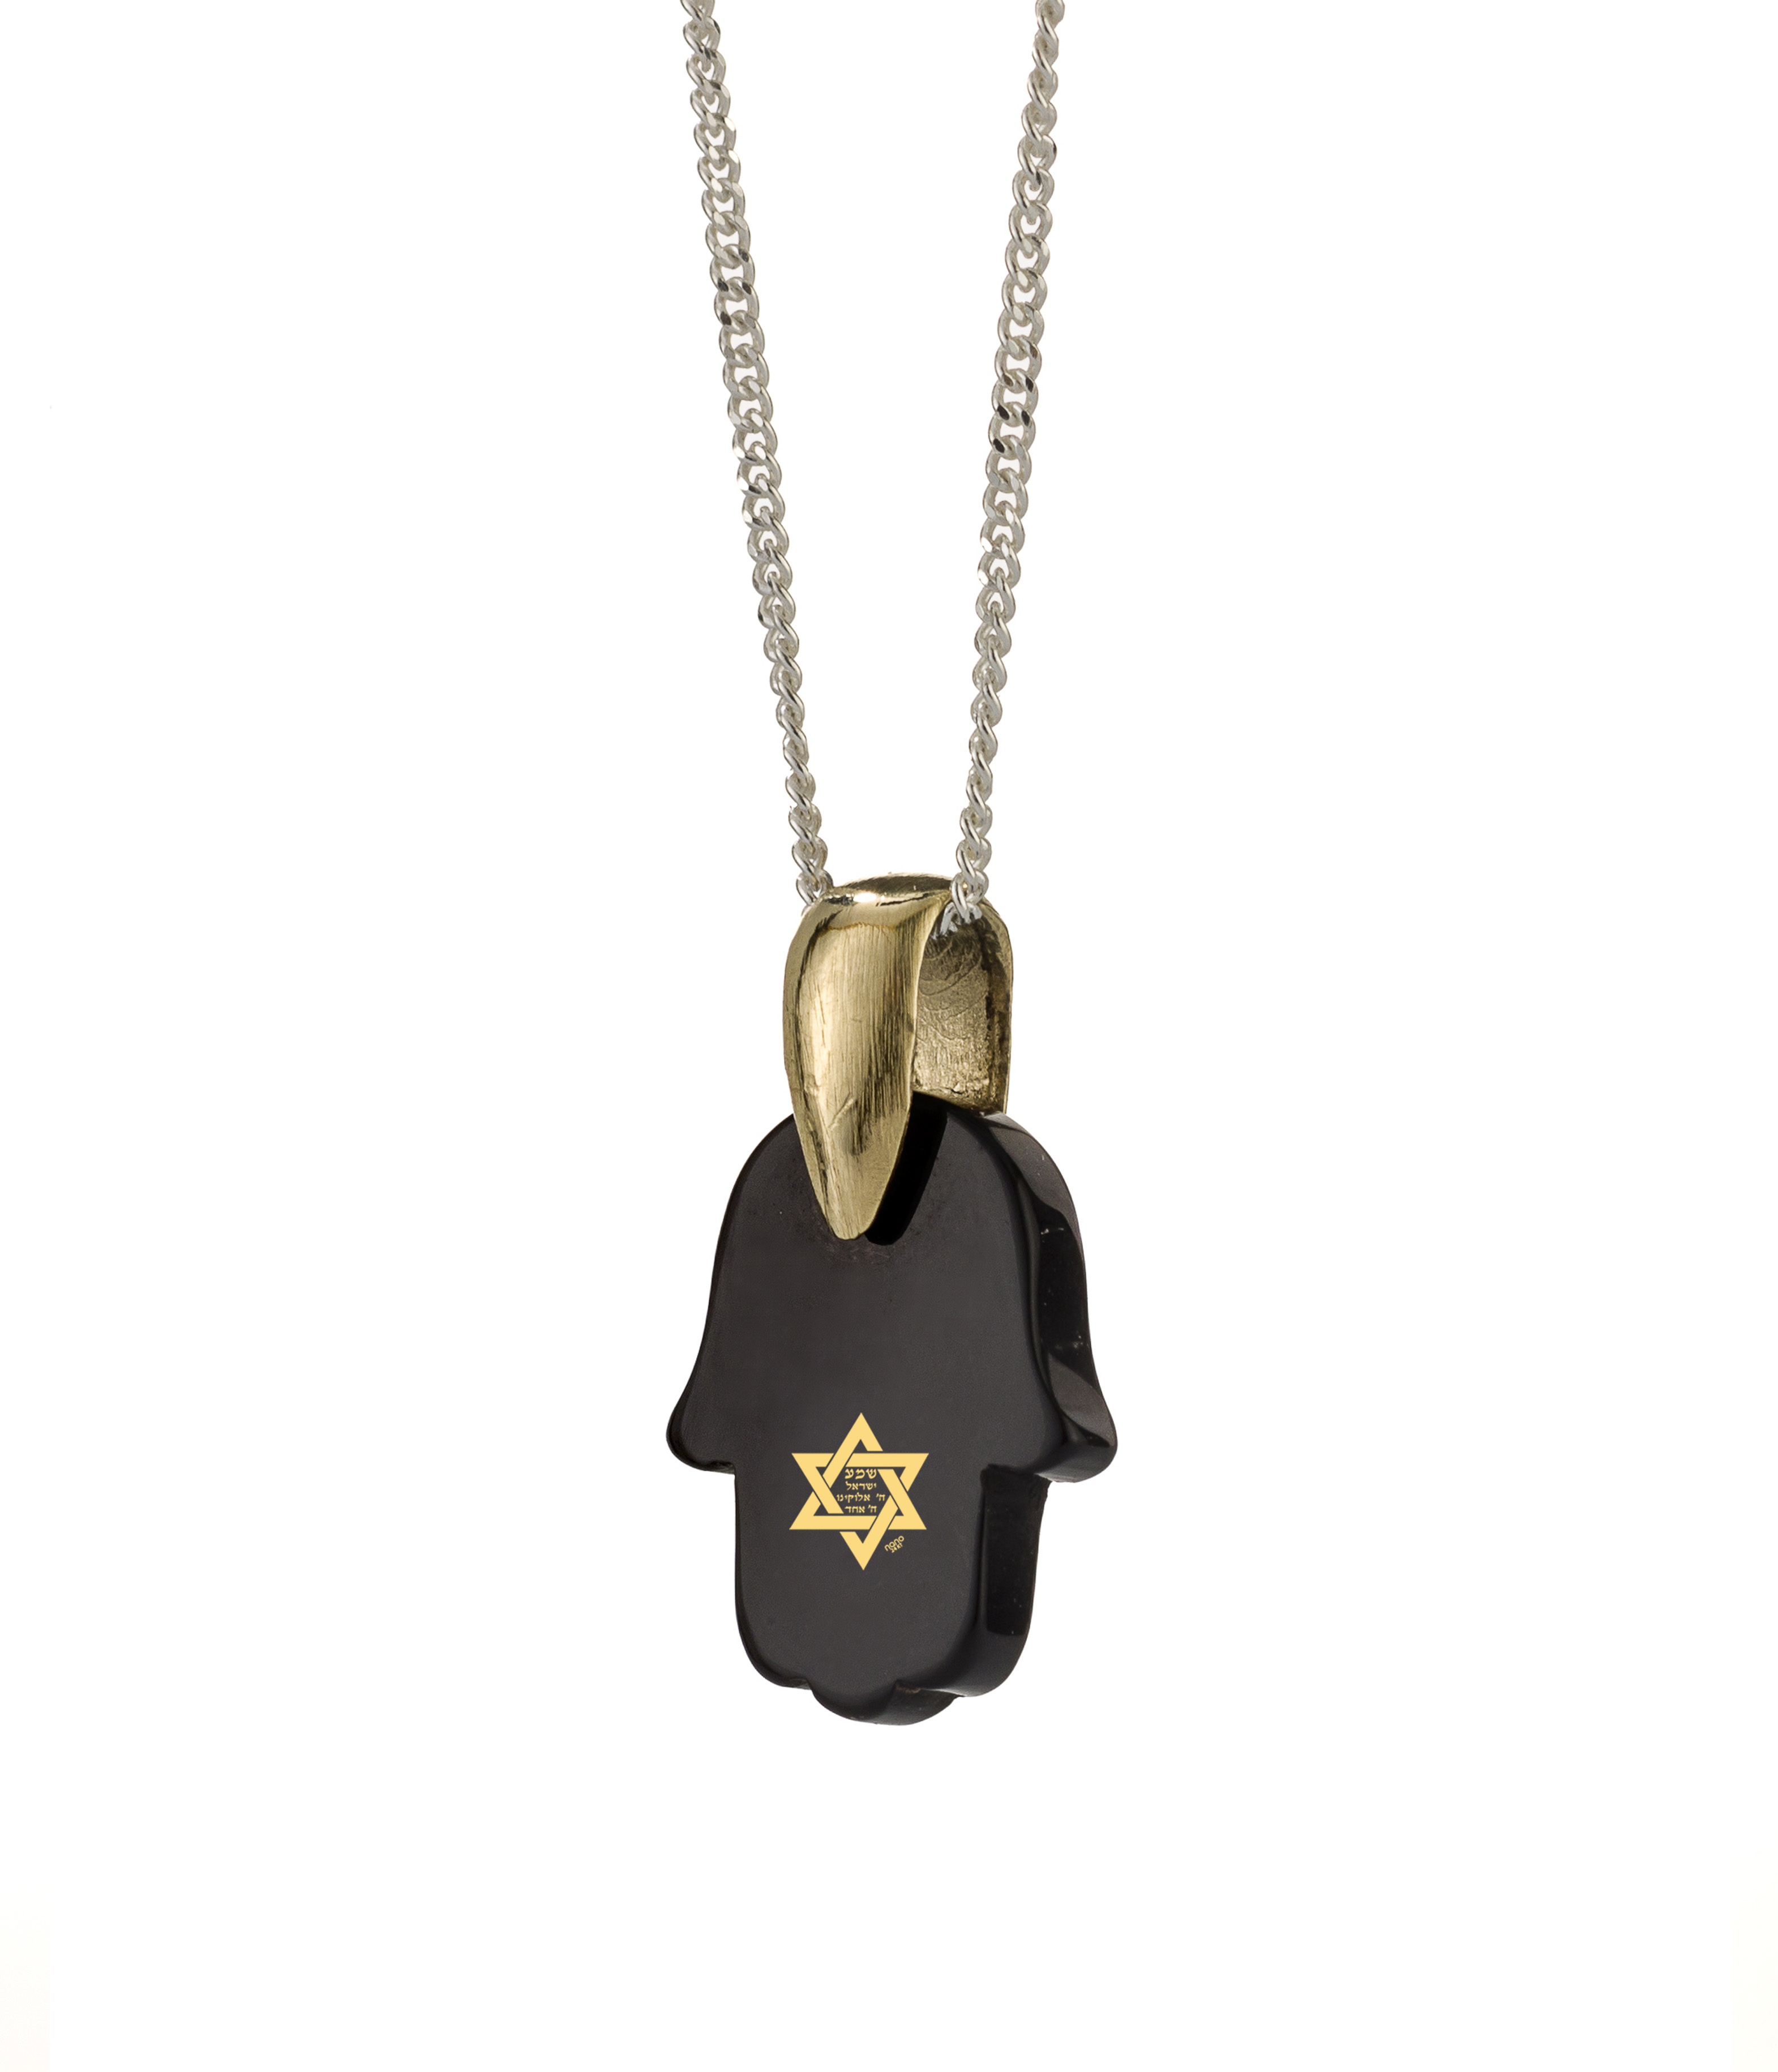 Protection And Peace Hamsa For Protection Against The Evil Eye